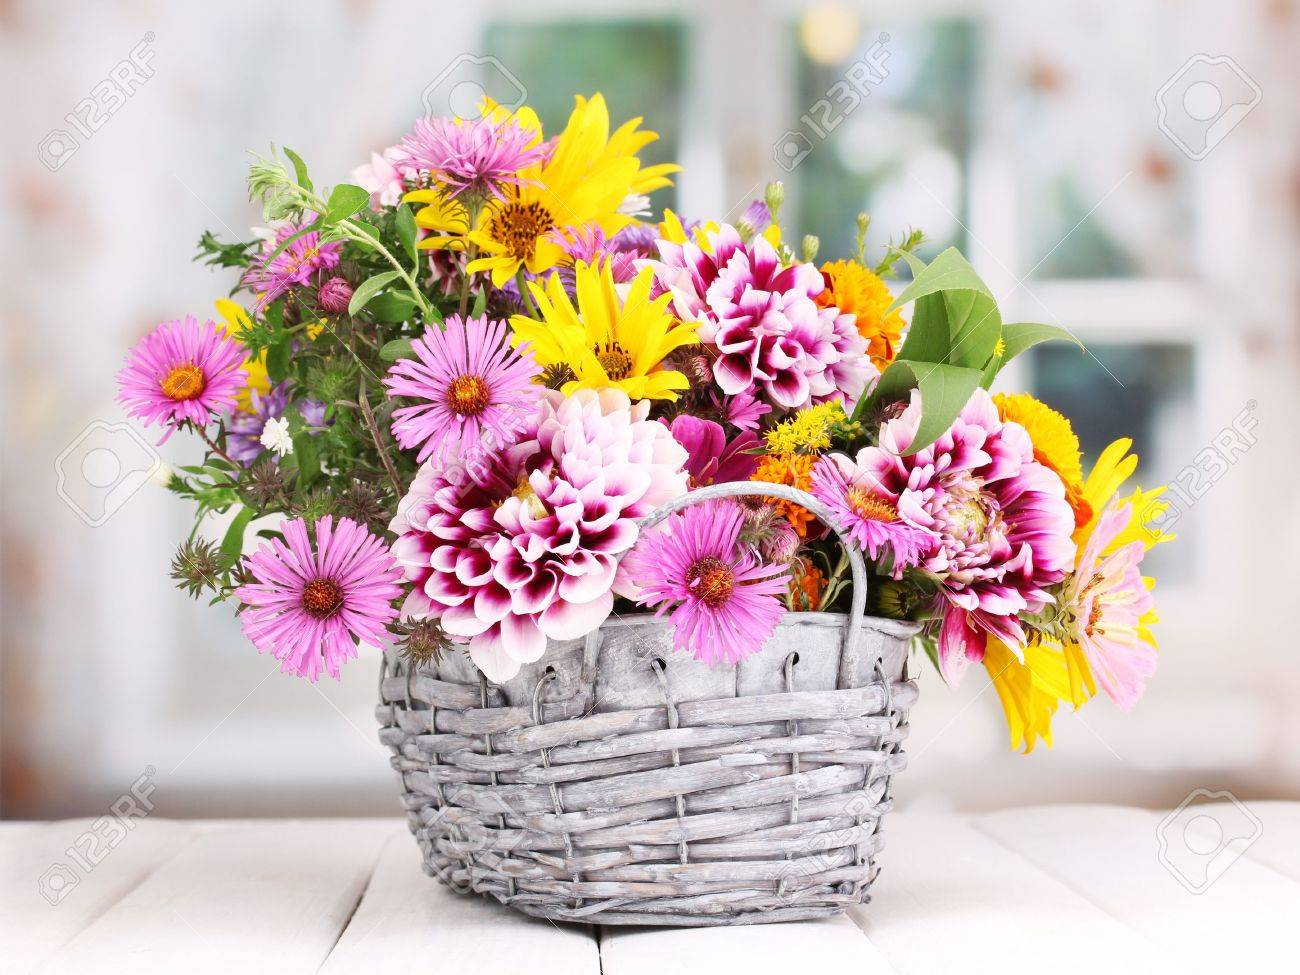 Beautiful Bouquet Of Bright Flowers In Basket On Wooden Table Stock ...